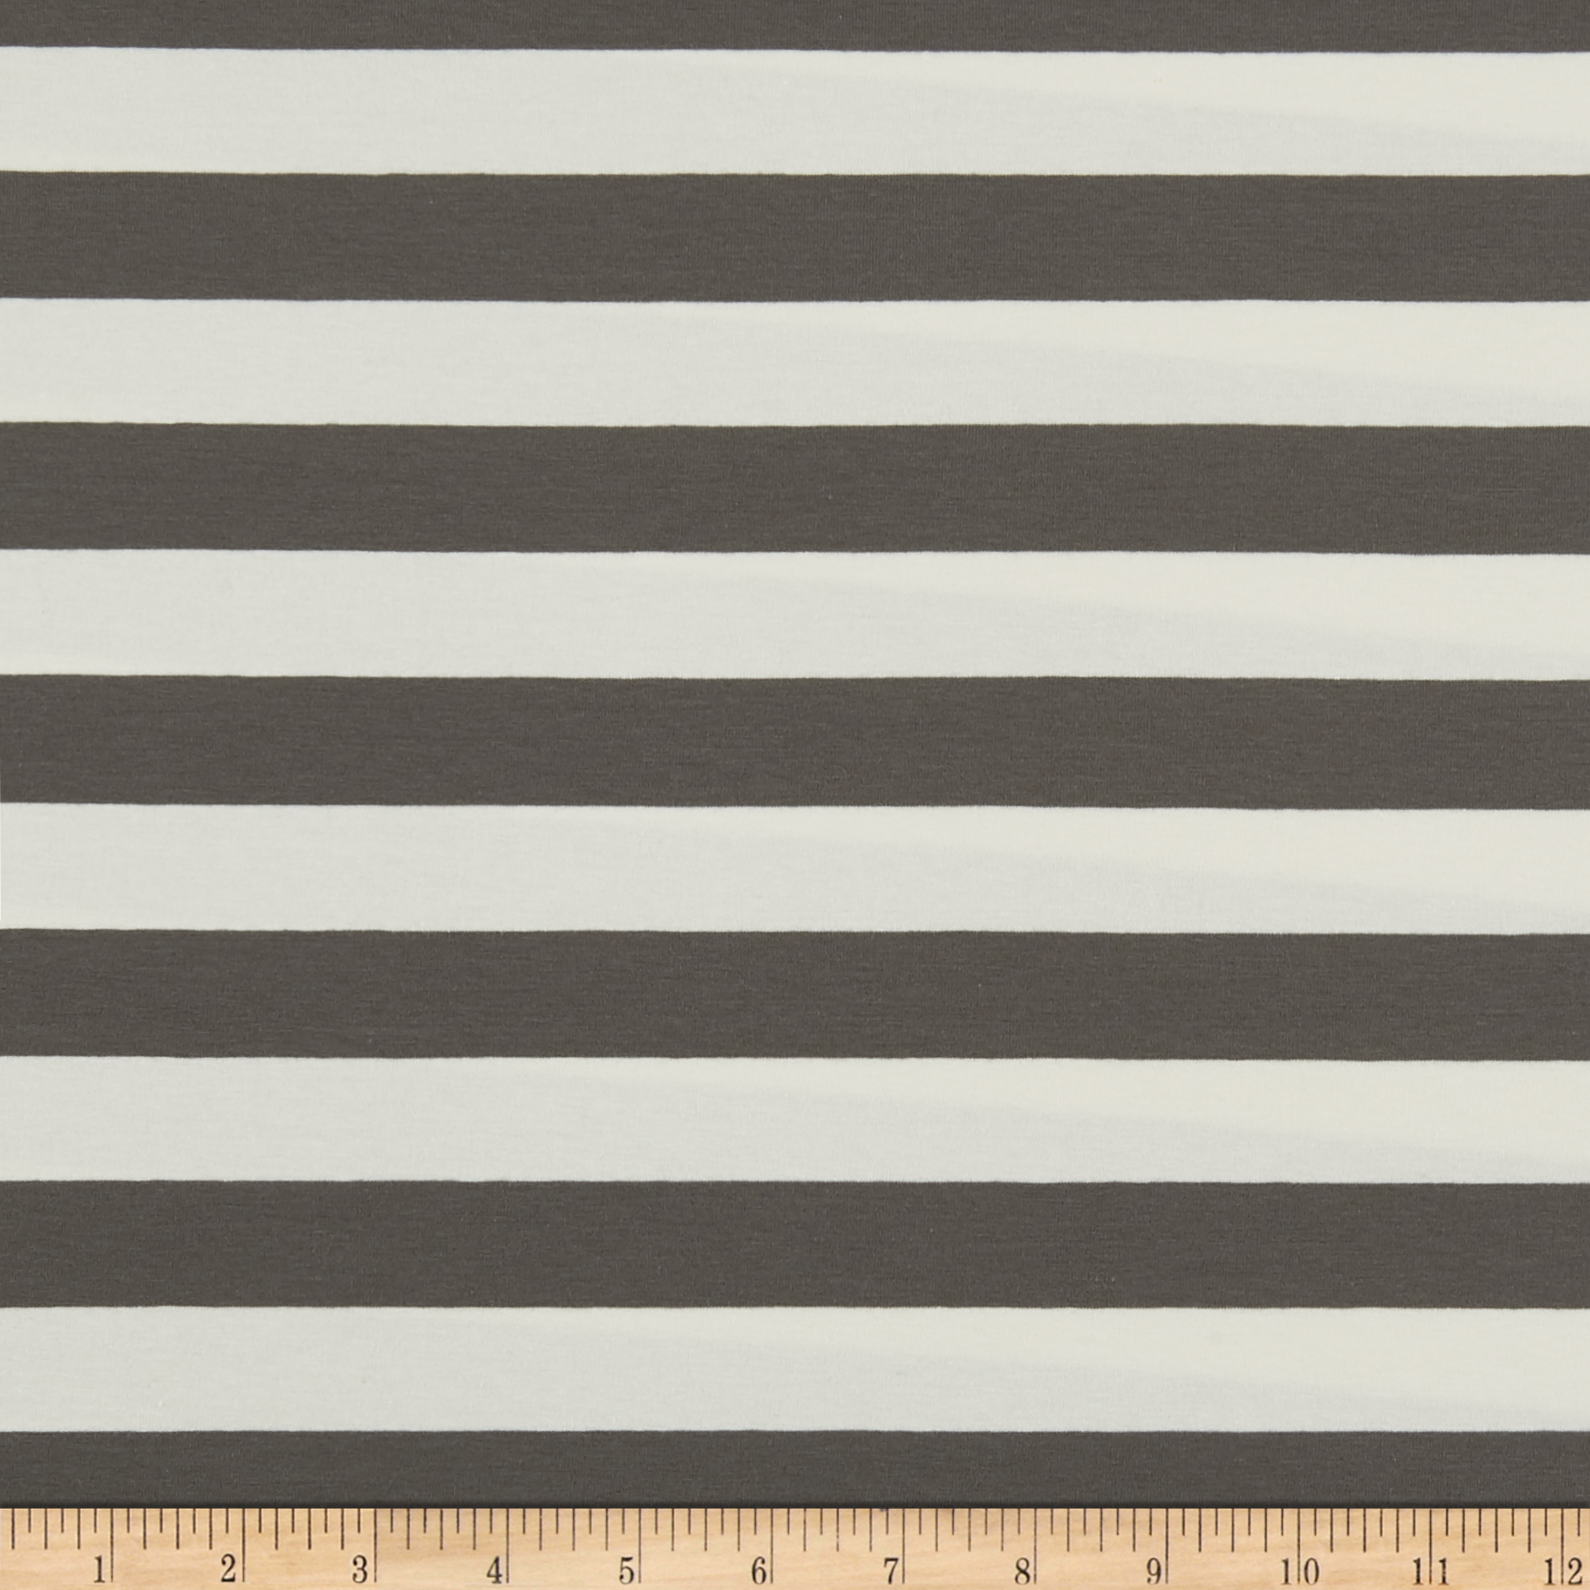 Art Gallery Striped Bold Graphite Jersey Knit Grey & White Fabric